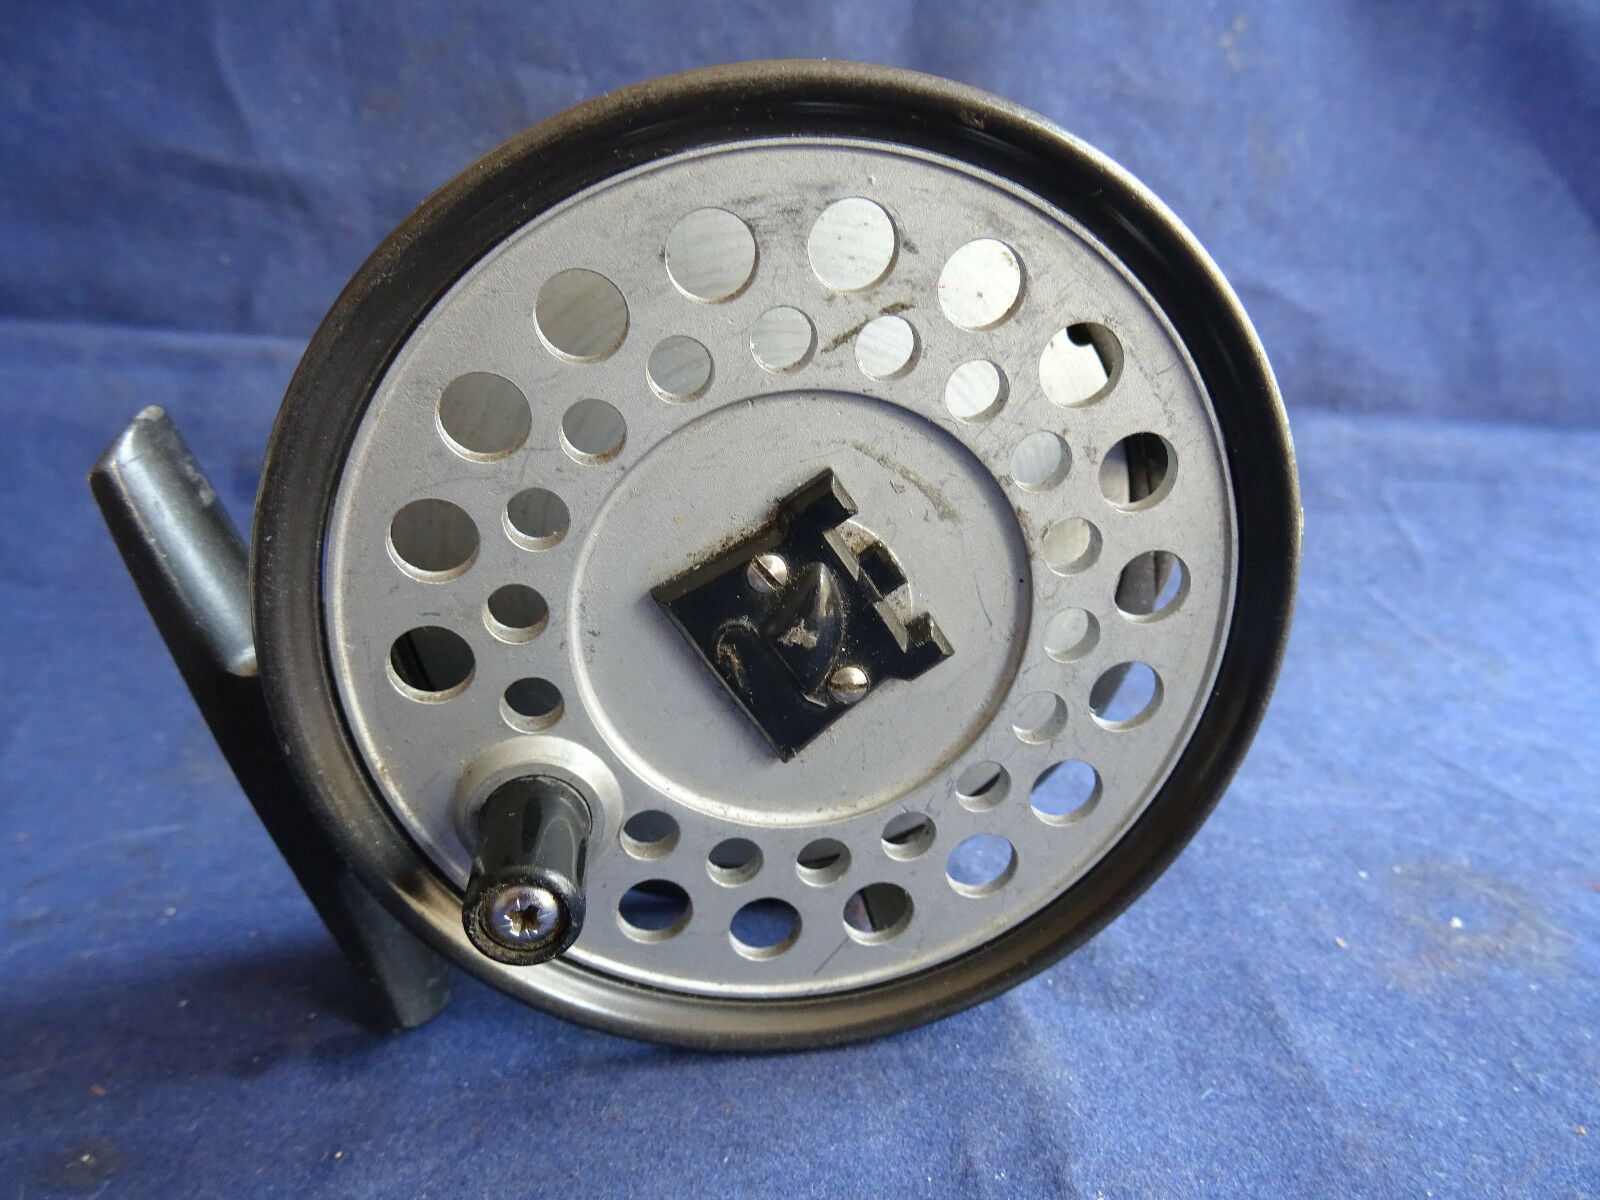 A VERY  GOOD VINTAGE HARDY VISCOUNT 130 TROUT FLY REEL WITH CASTLE LOGO SPOOL  to provide you with a pleasant online shopping